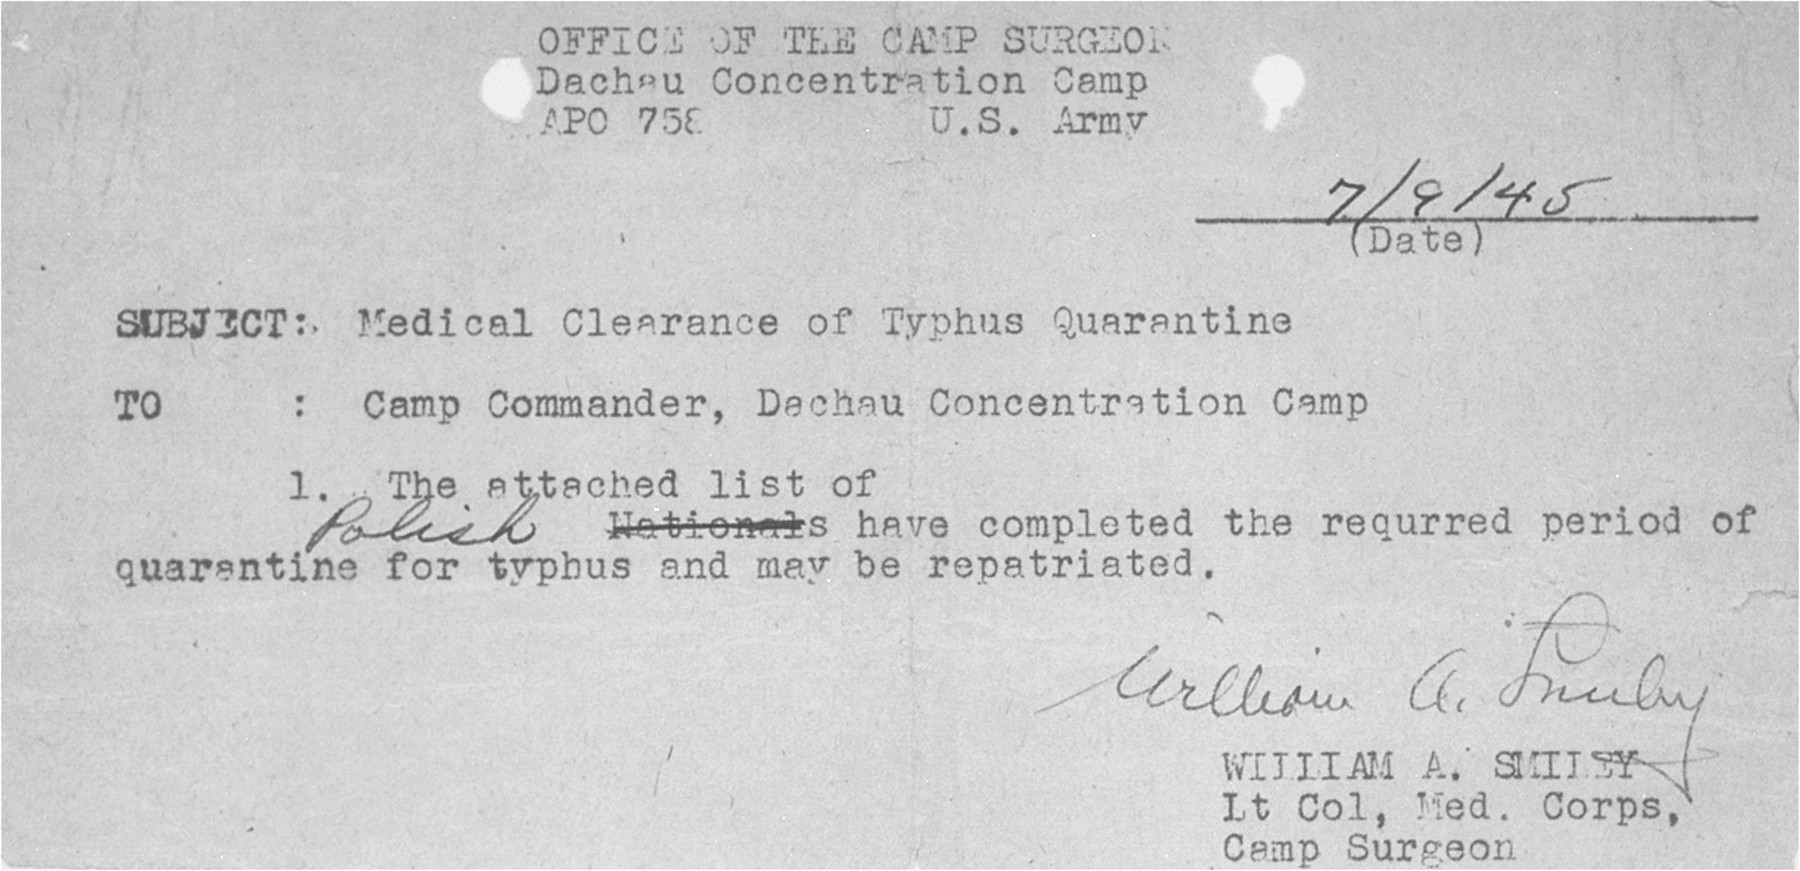 A document certifying that Mendel Rozenblit has completed the required period of quarantine for typhus at the Dachau concentration camp and may now be released for repatriation.  The release was signed by William A. Smiley, camp surgeon.